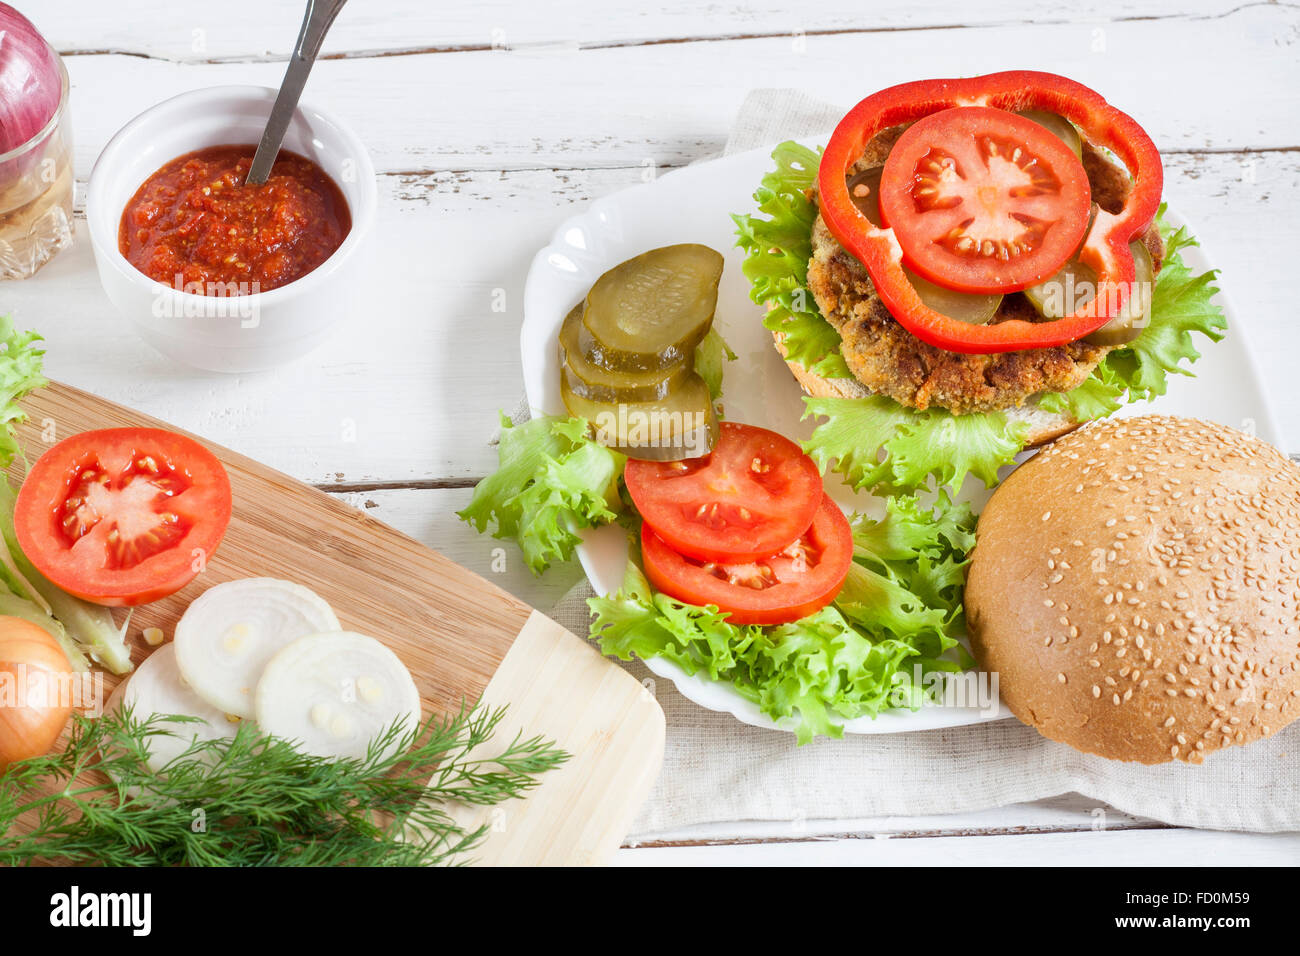 Homemade hamburger on white plate, sliced tomatoes, onion, pepper, lettuce and dill on wooden board, tomatoes souse - Stock Image